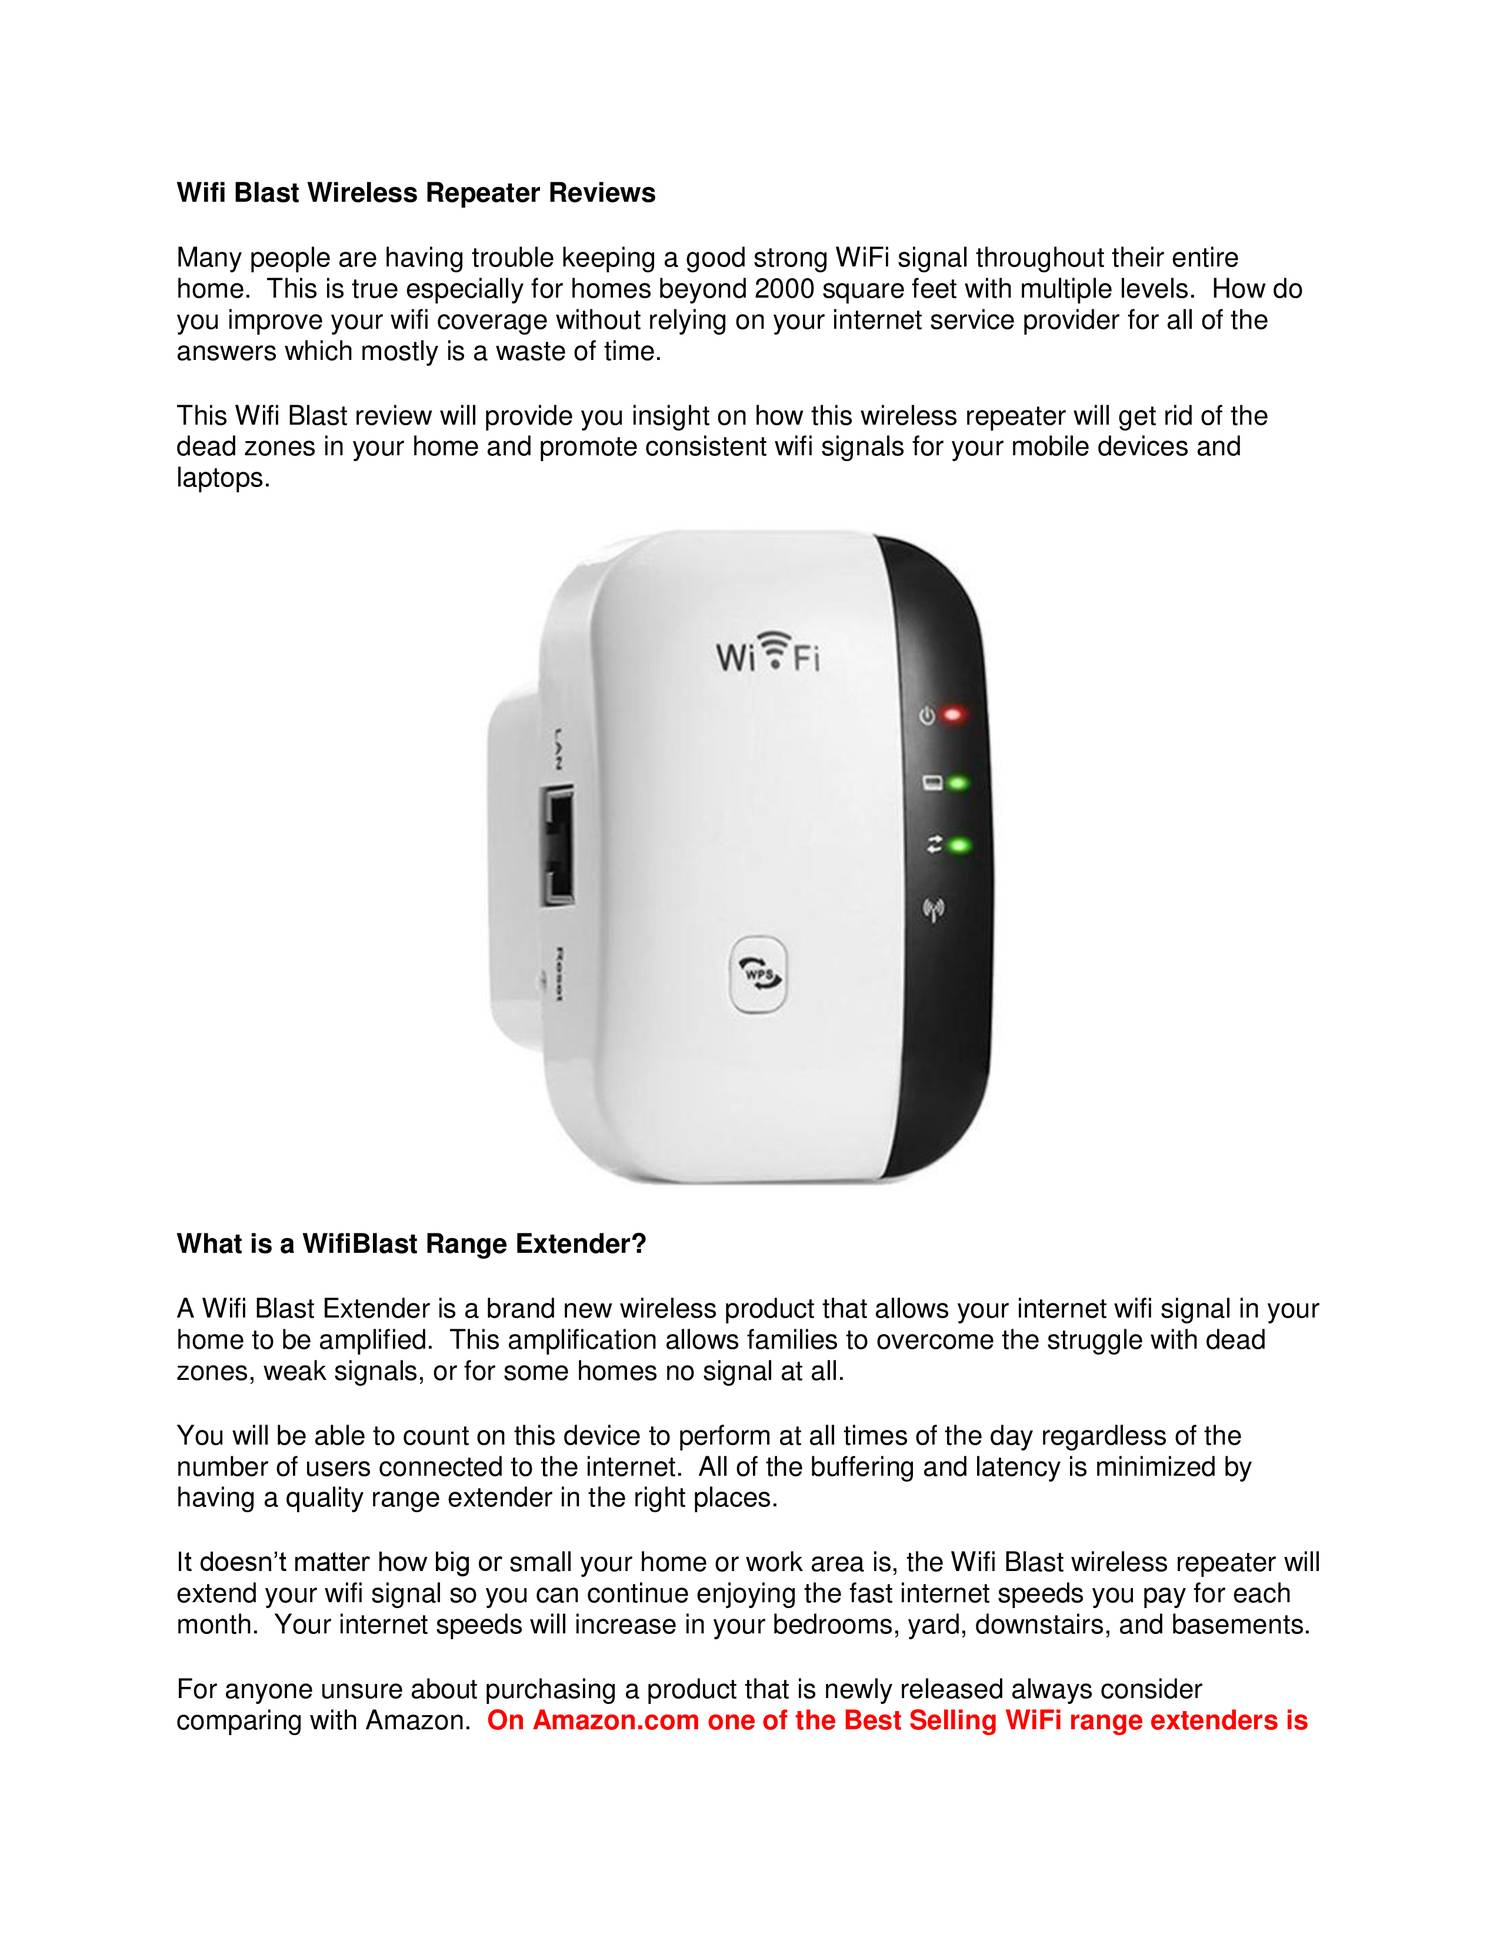 Wifi Blast Wireless Repeater Reviews docx | DocDroid